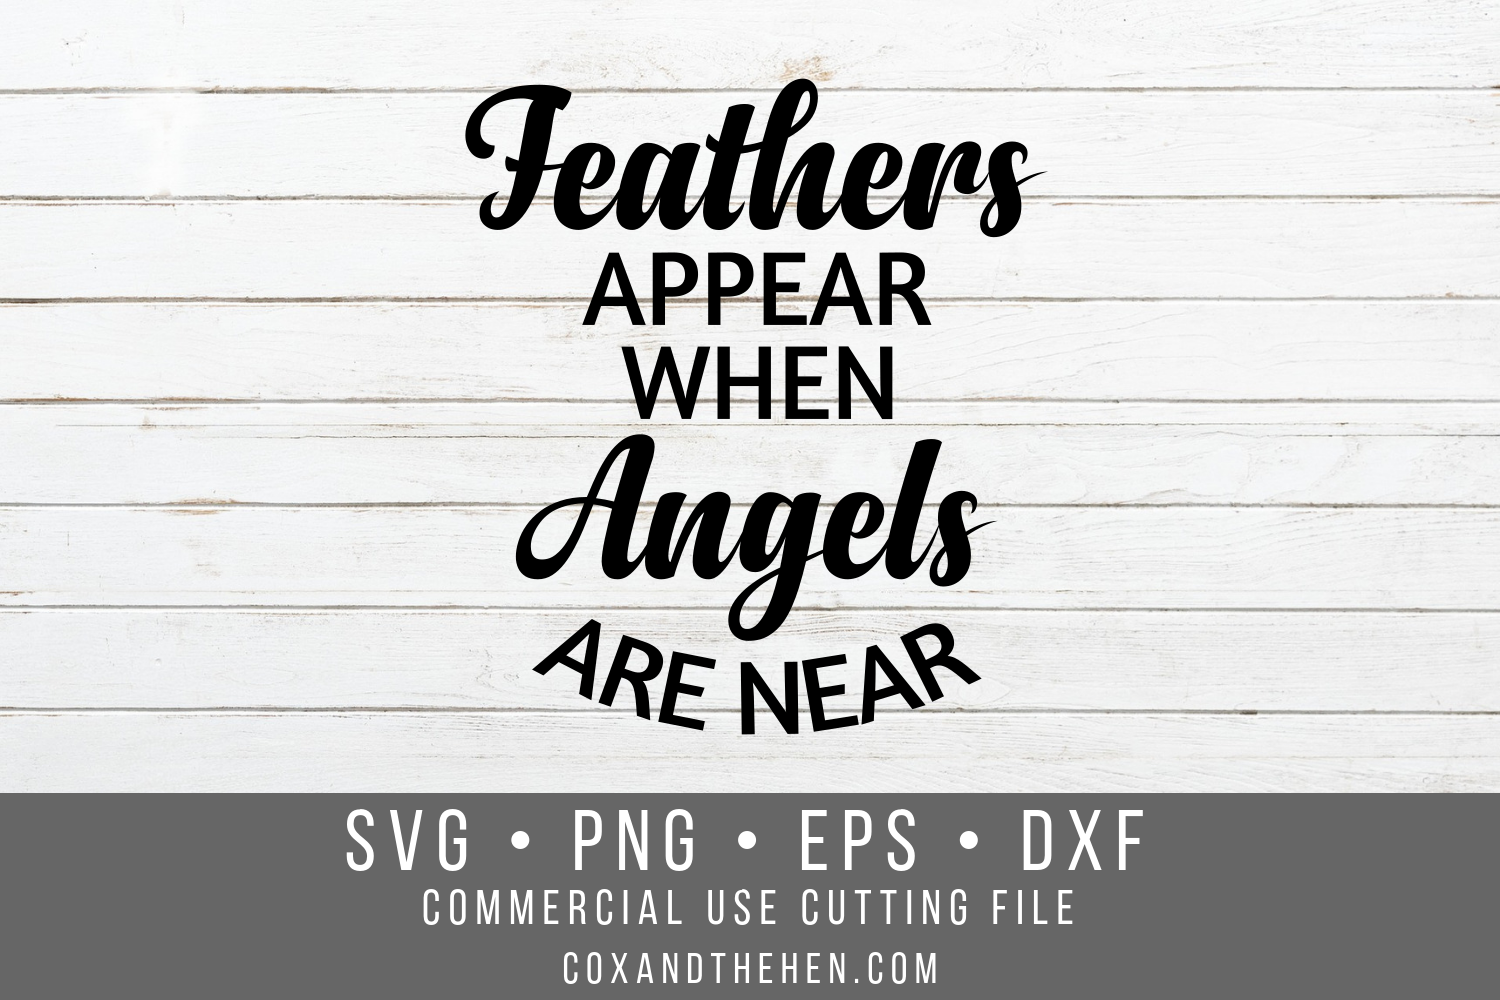 Feathers Appear when Angels are Near SVG - memorial ornament example image 3